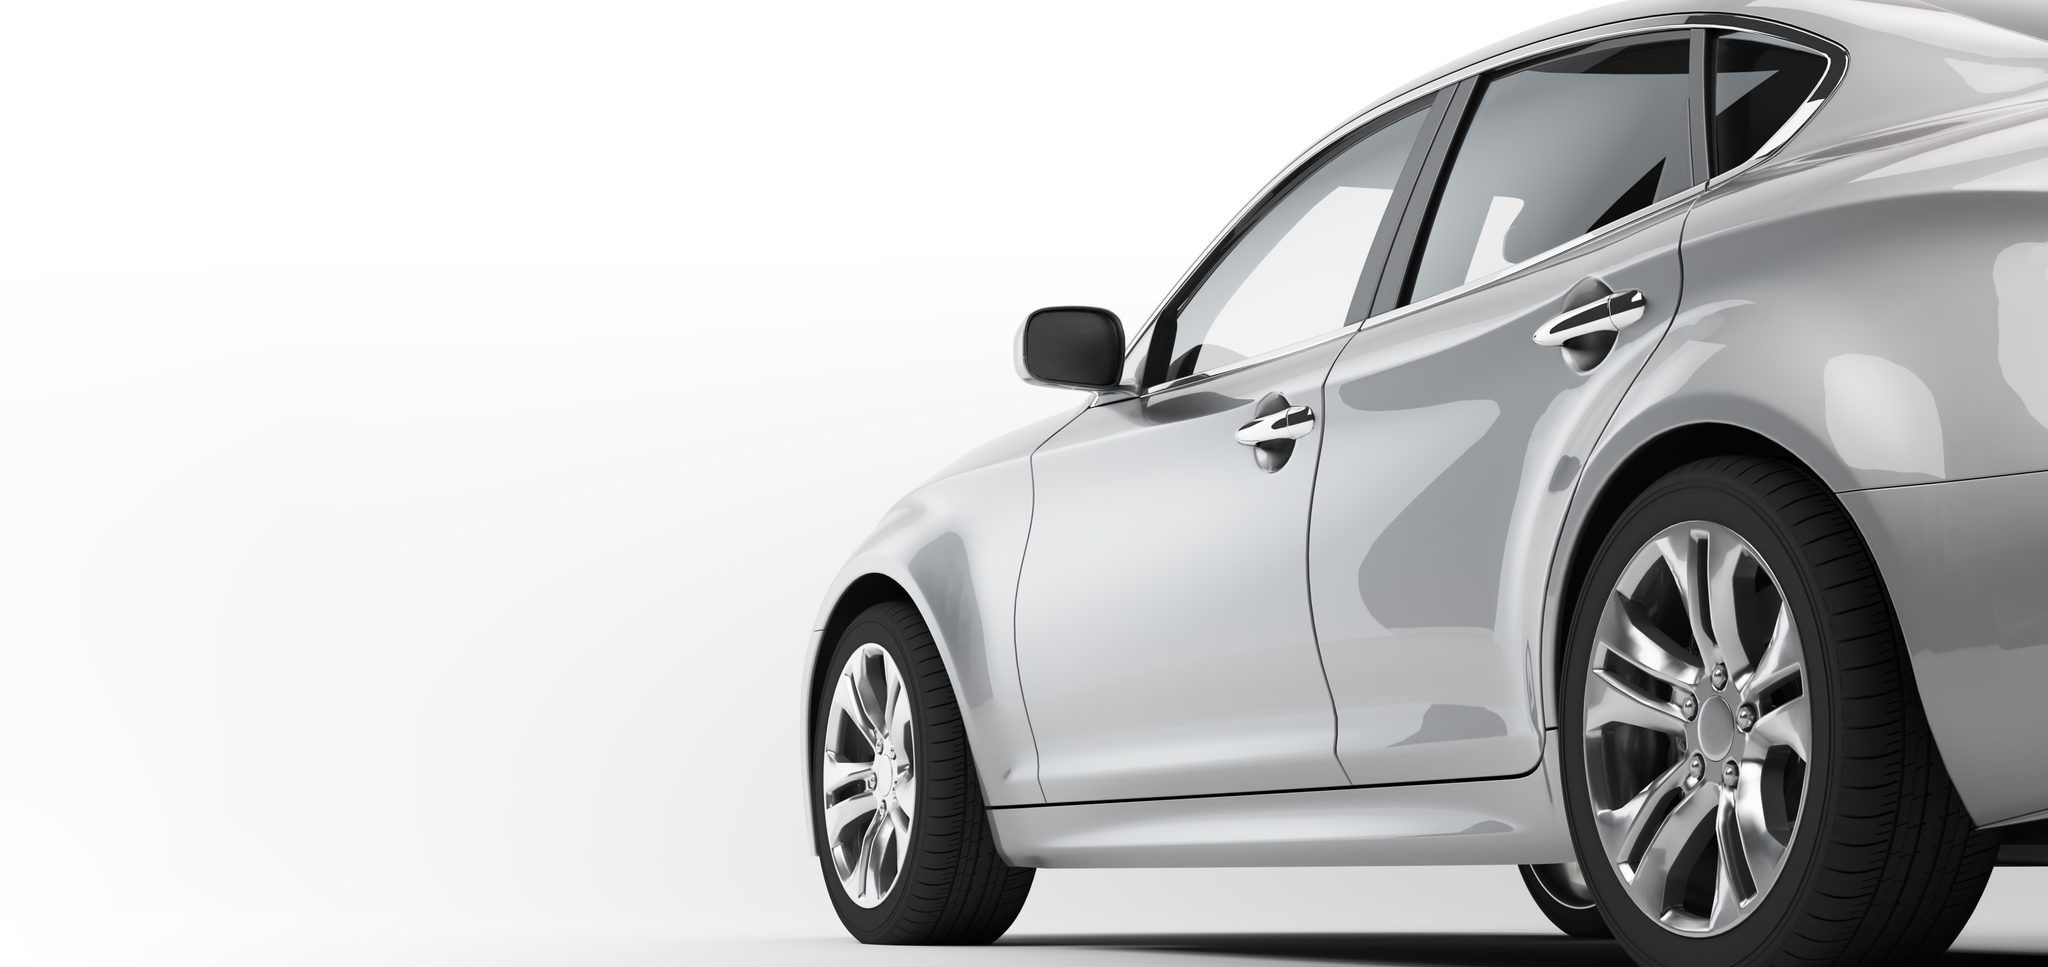 Side view of a parked sedan on white background